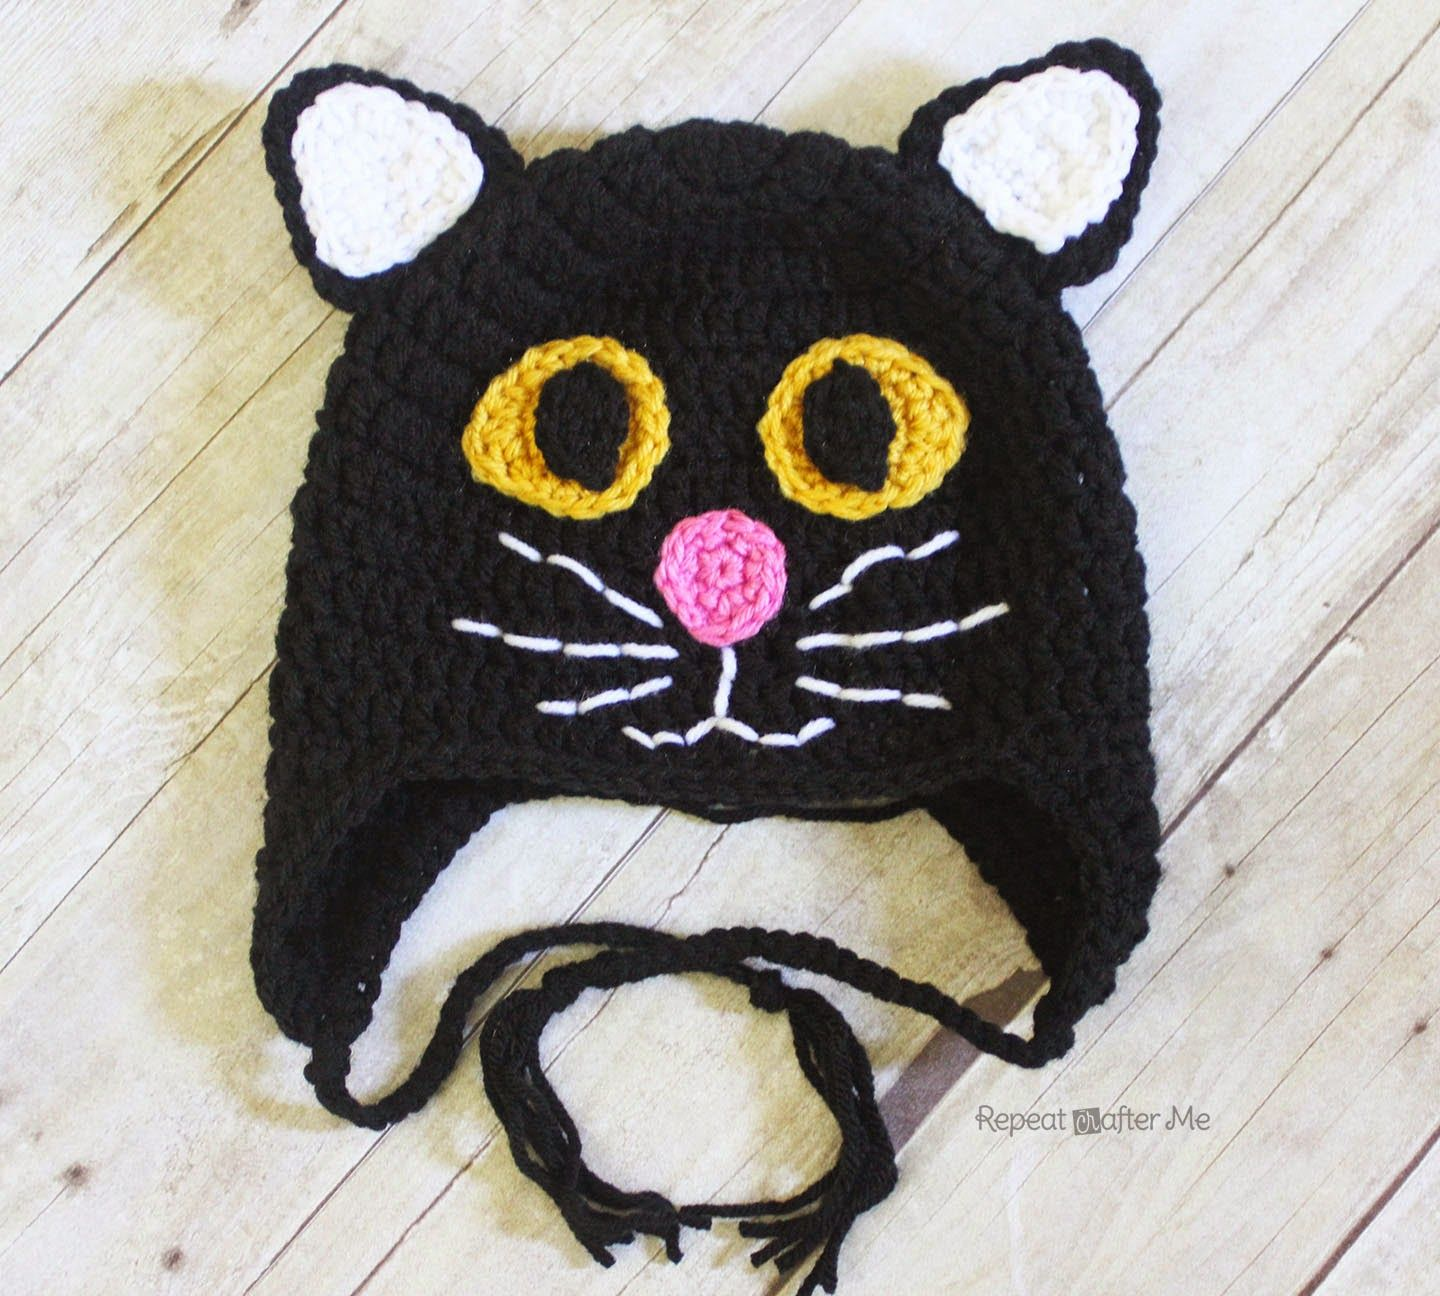 Here is the purrrfect cat hat for Halloween! Or if you